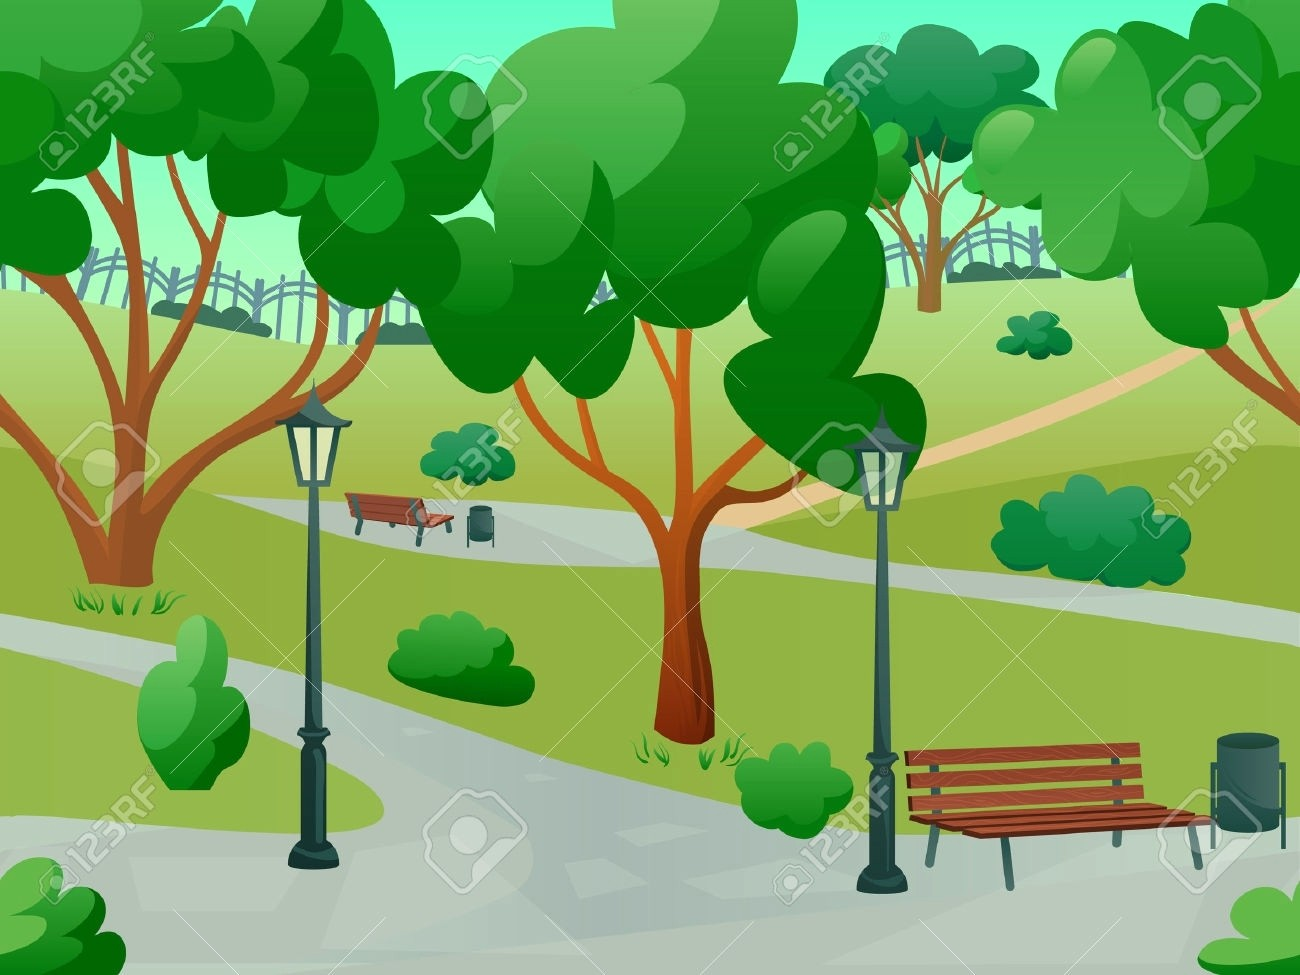 1300x975 Park Clipart 20 G Nature Stock Vector Illustration And Royalty